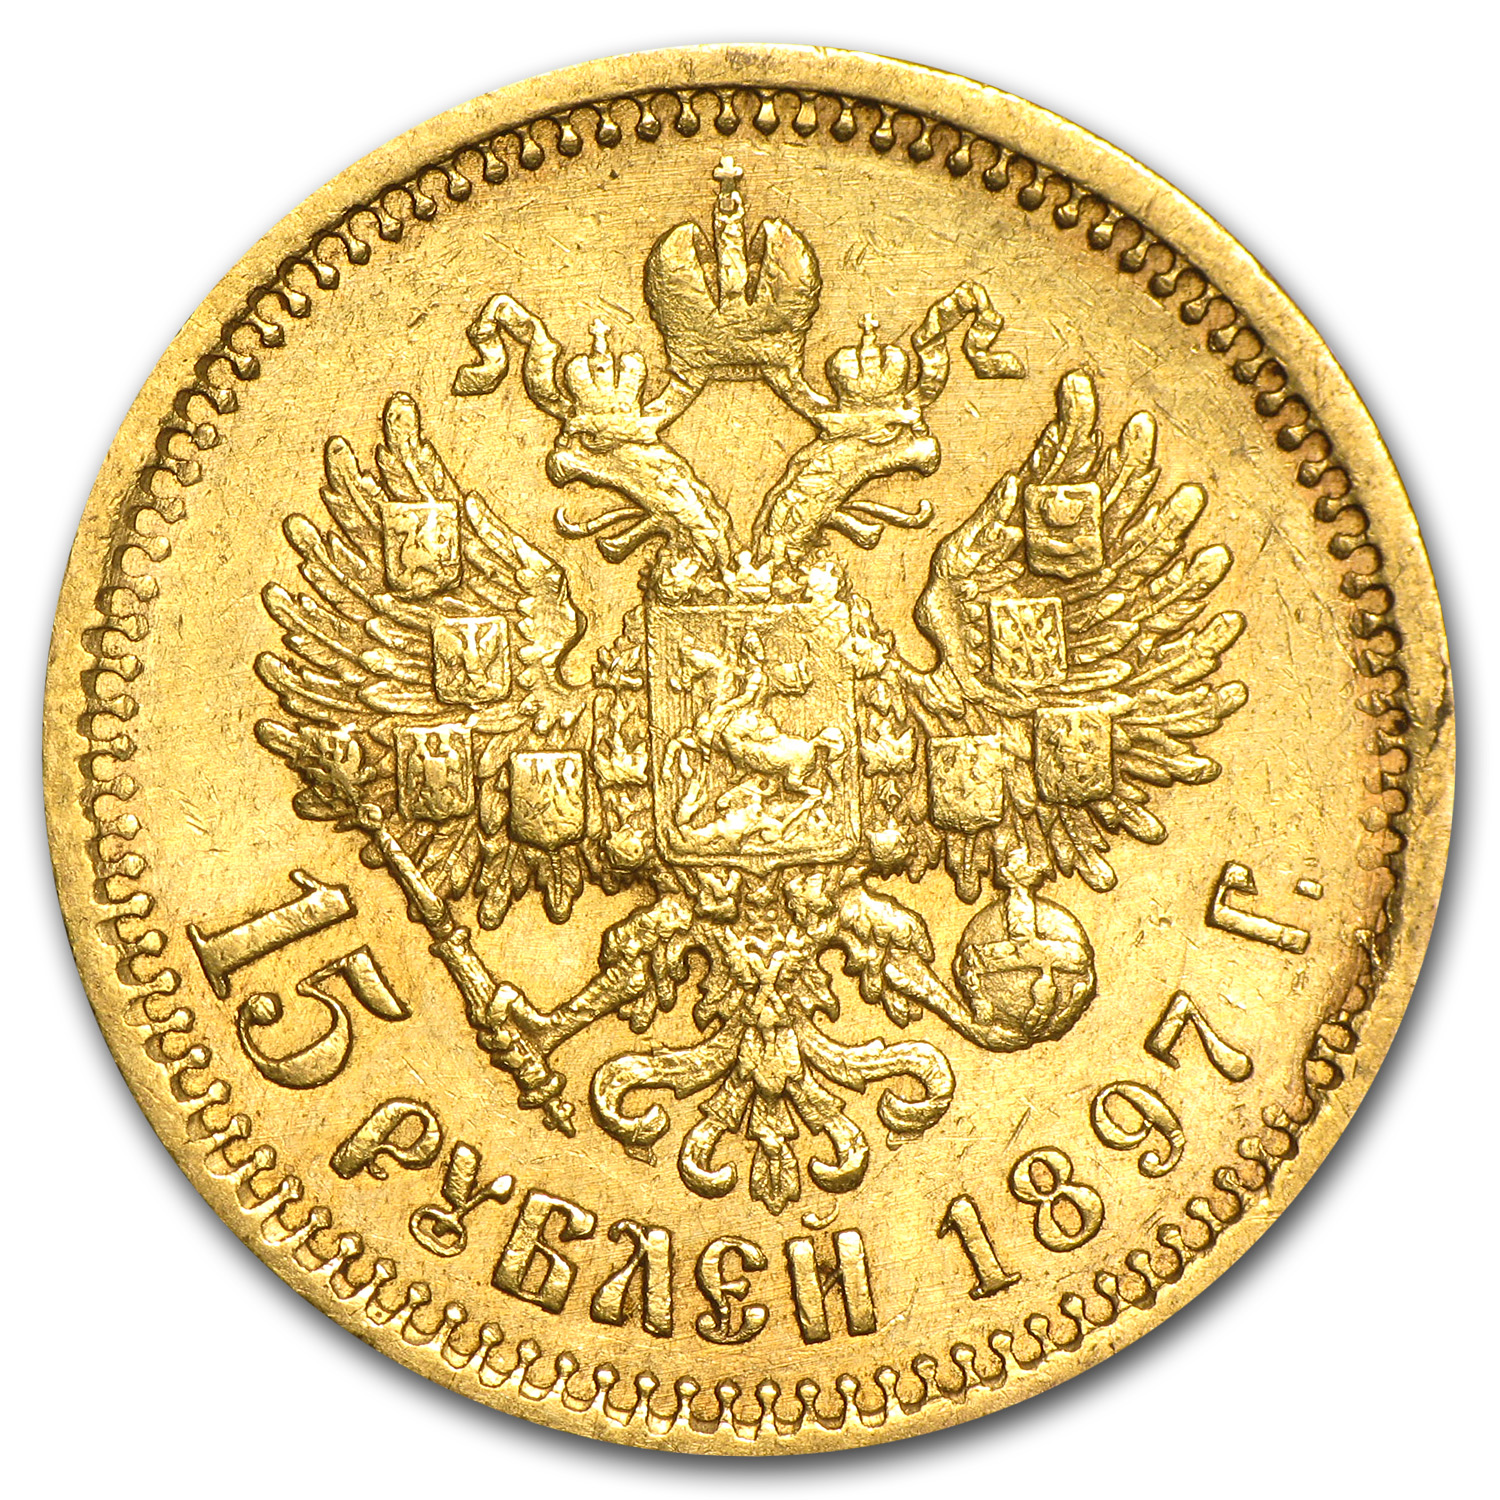 Russia 1897 Gold 15 Roubles of Nicholas II (EF)